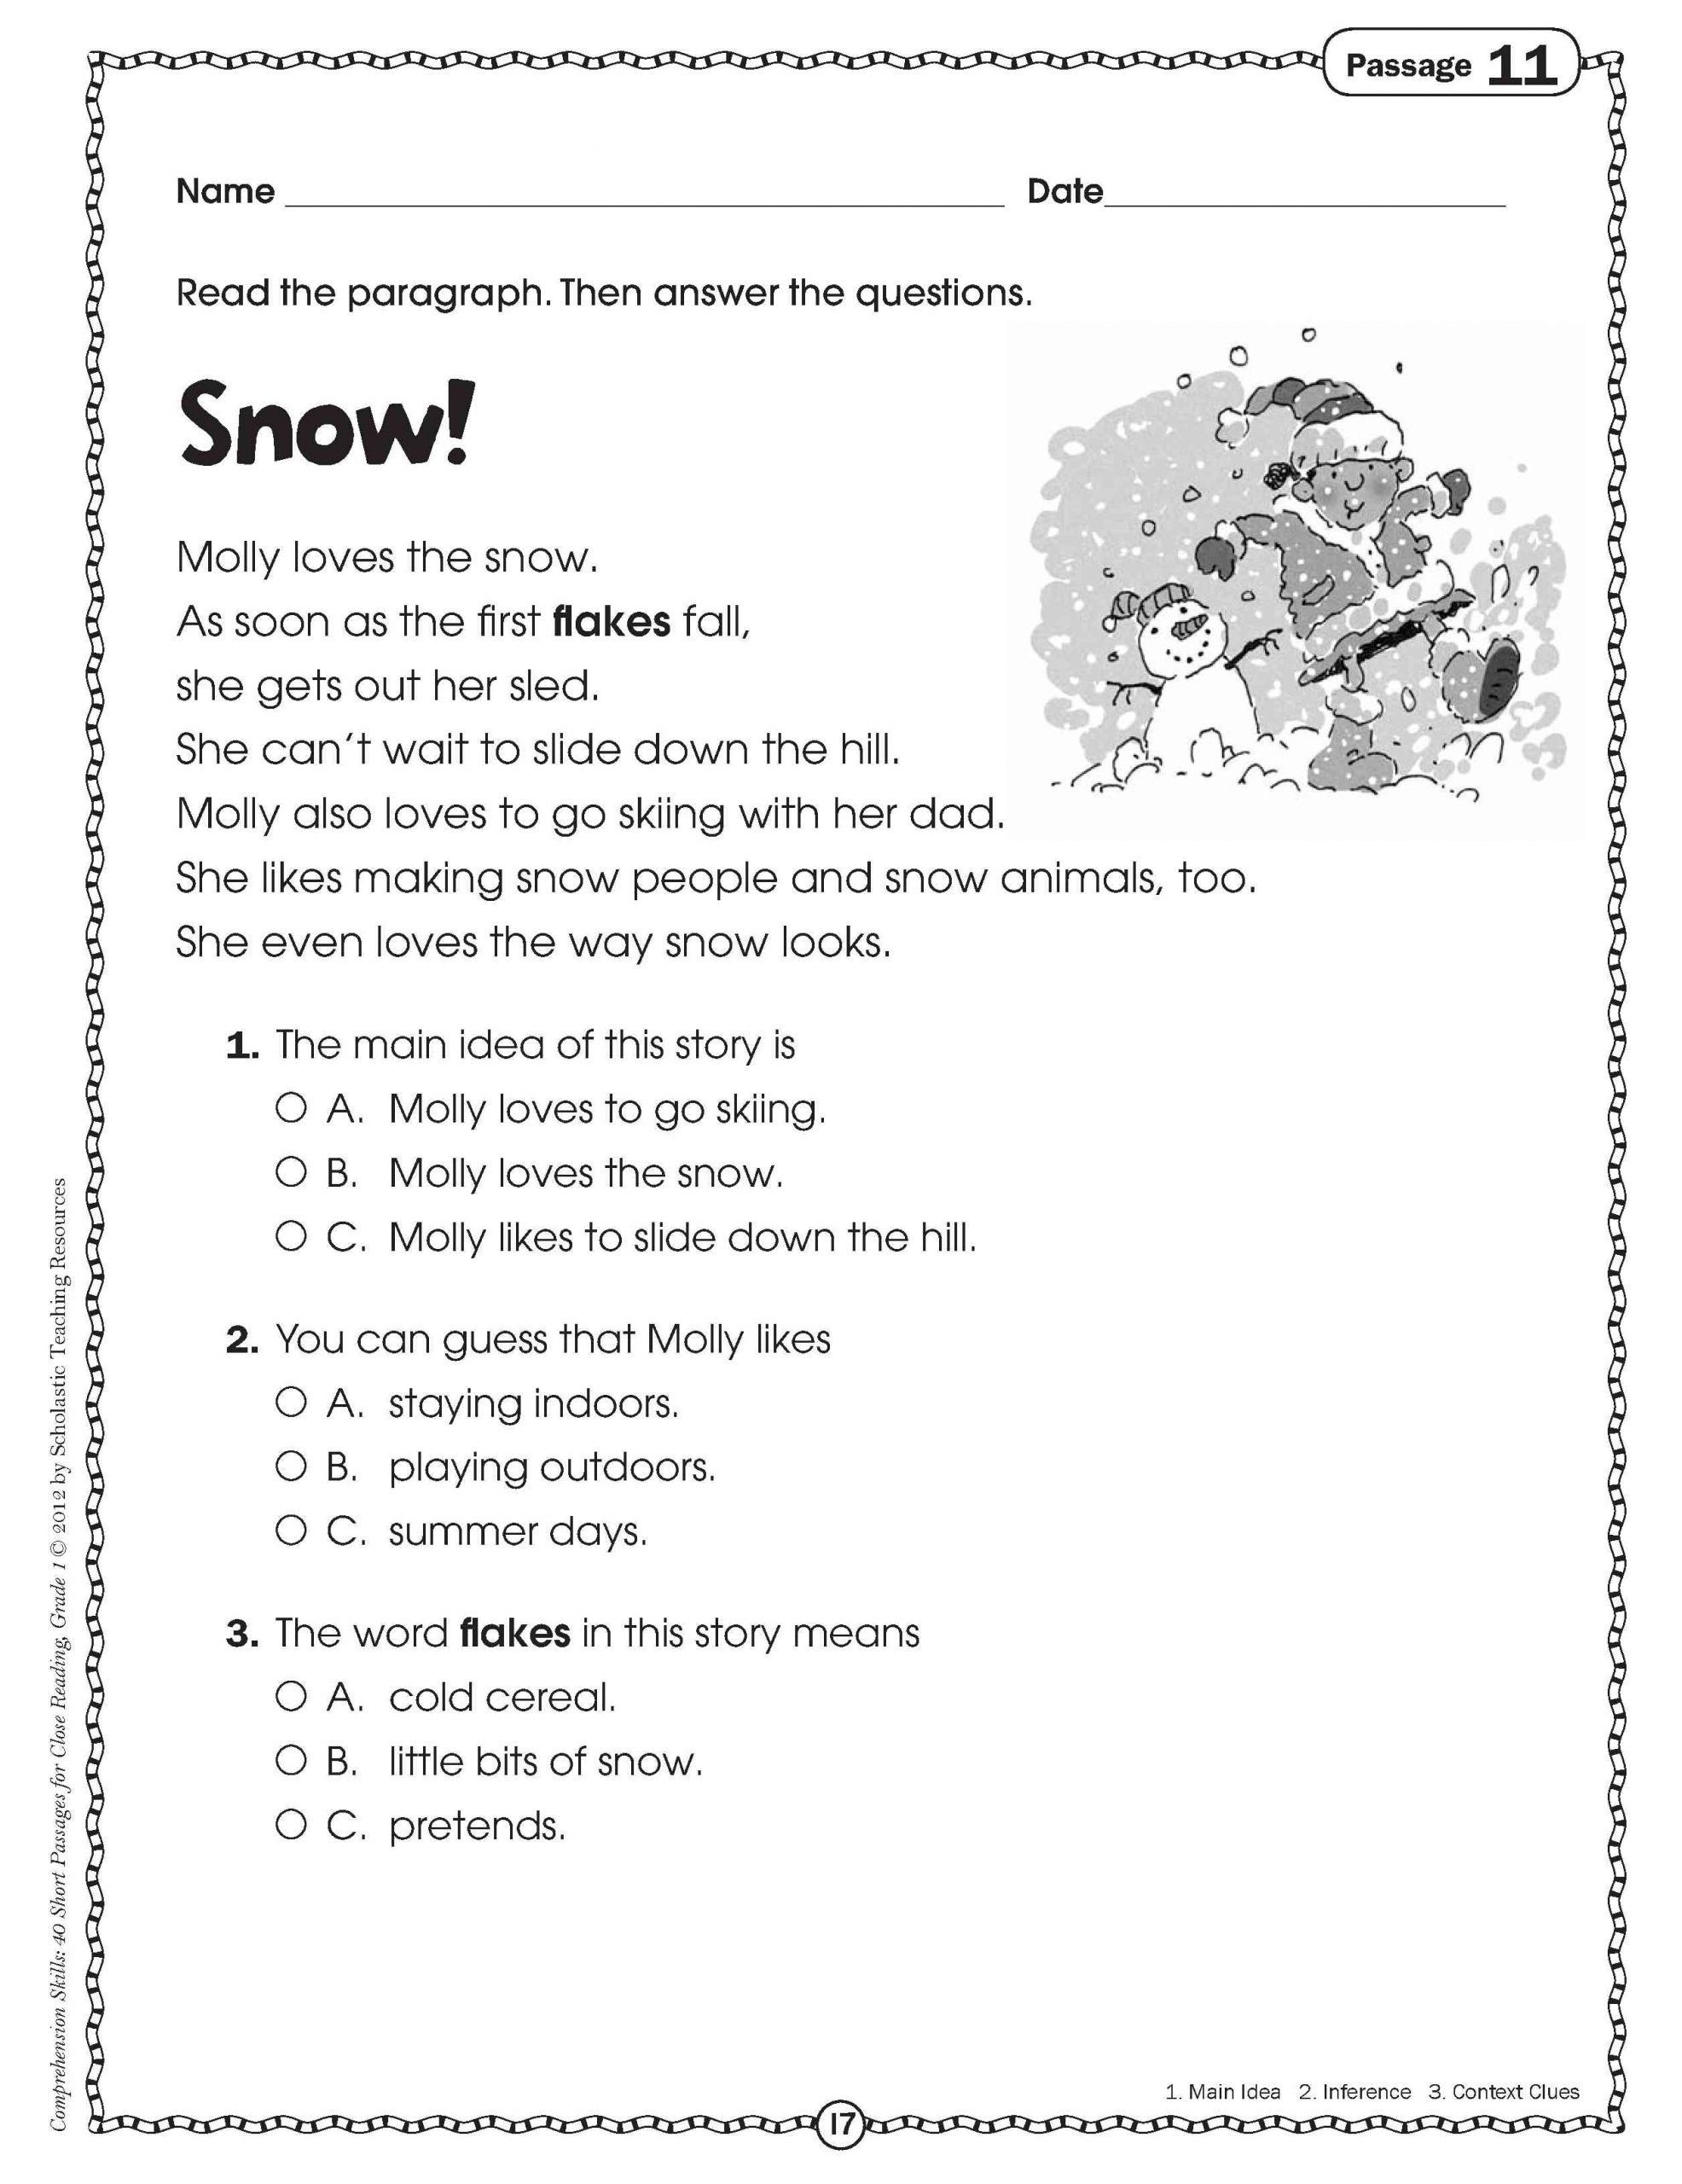 medium resolution of Respect Worksheets for Kids Worksheet Ideas Shortassage with Questions  About Respect   Reading worksheets